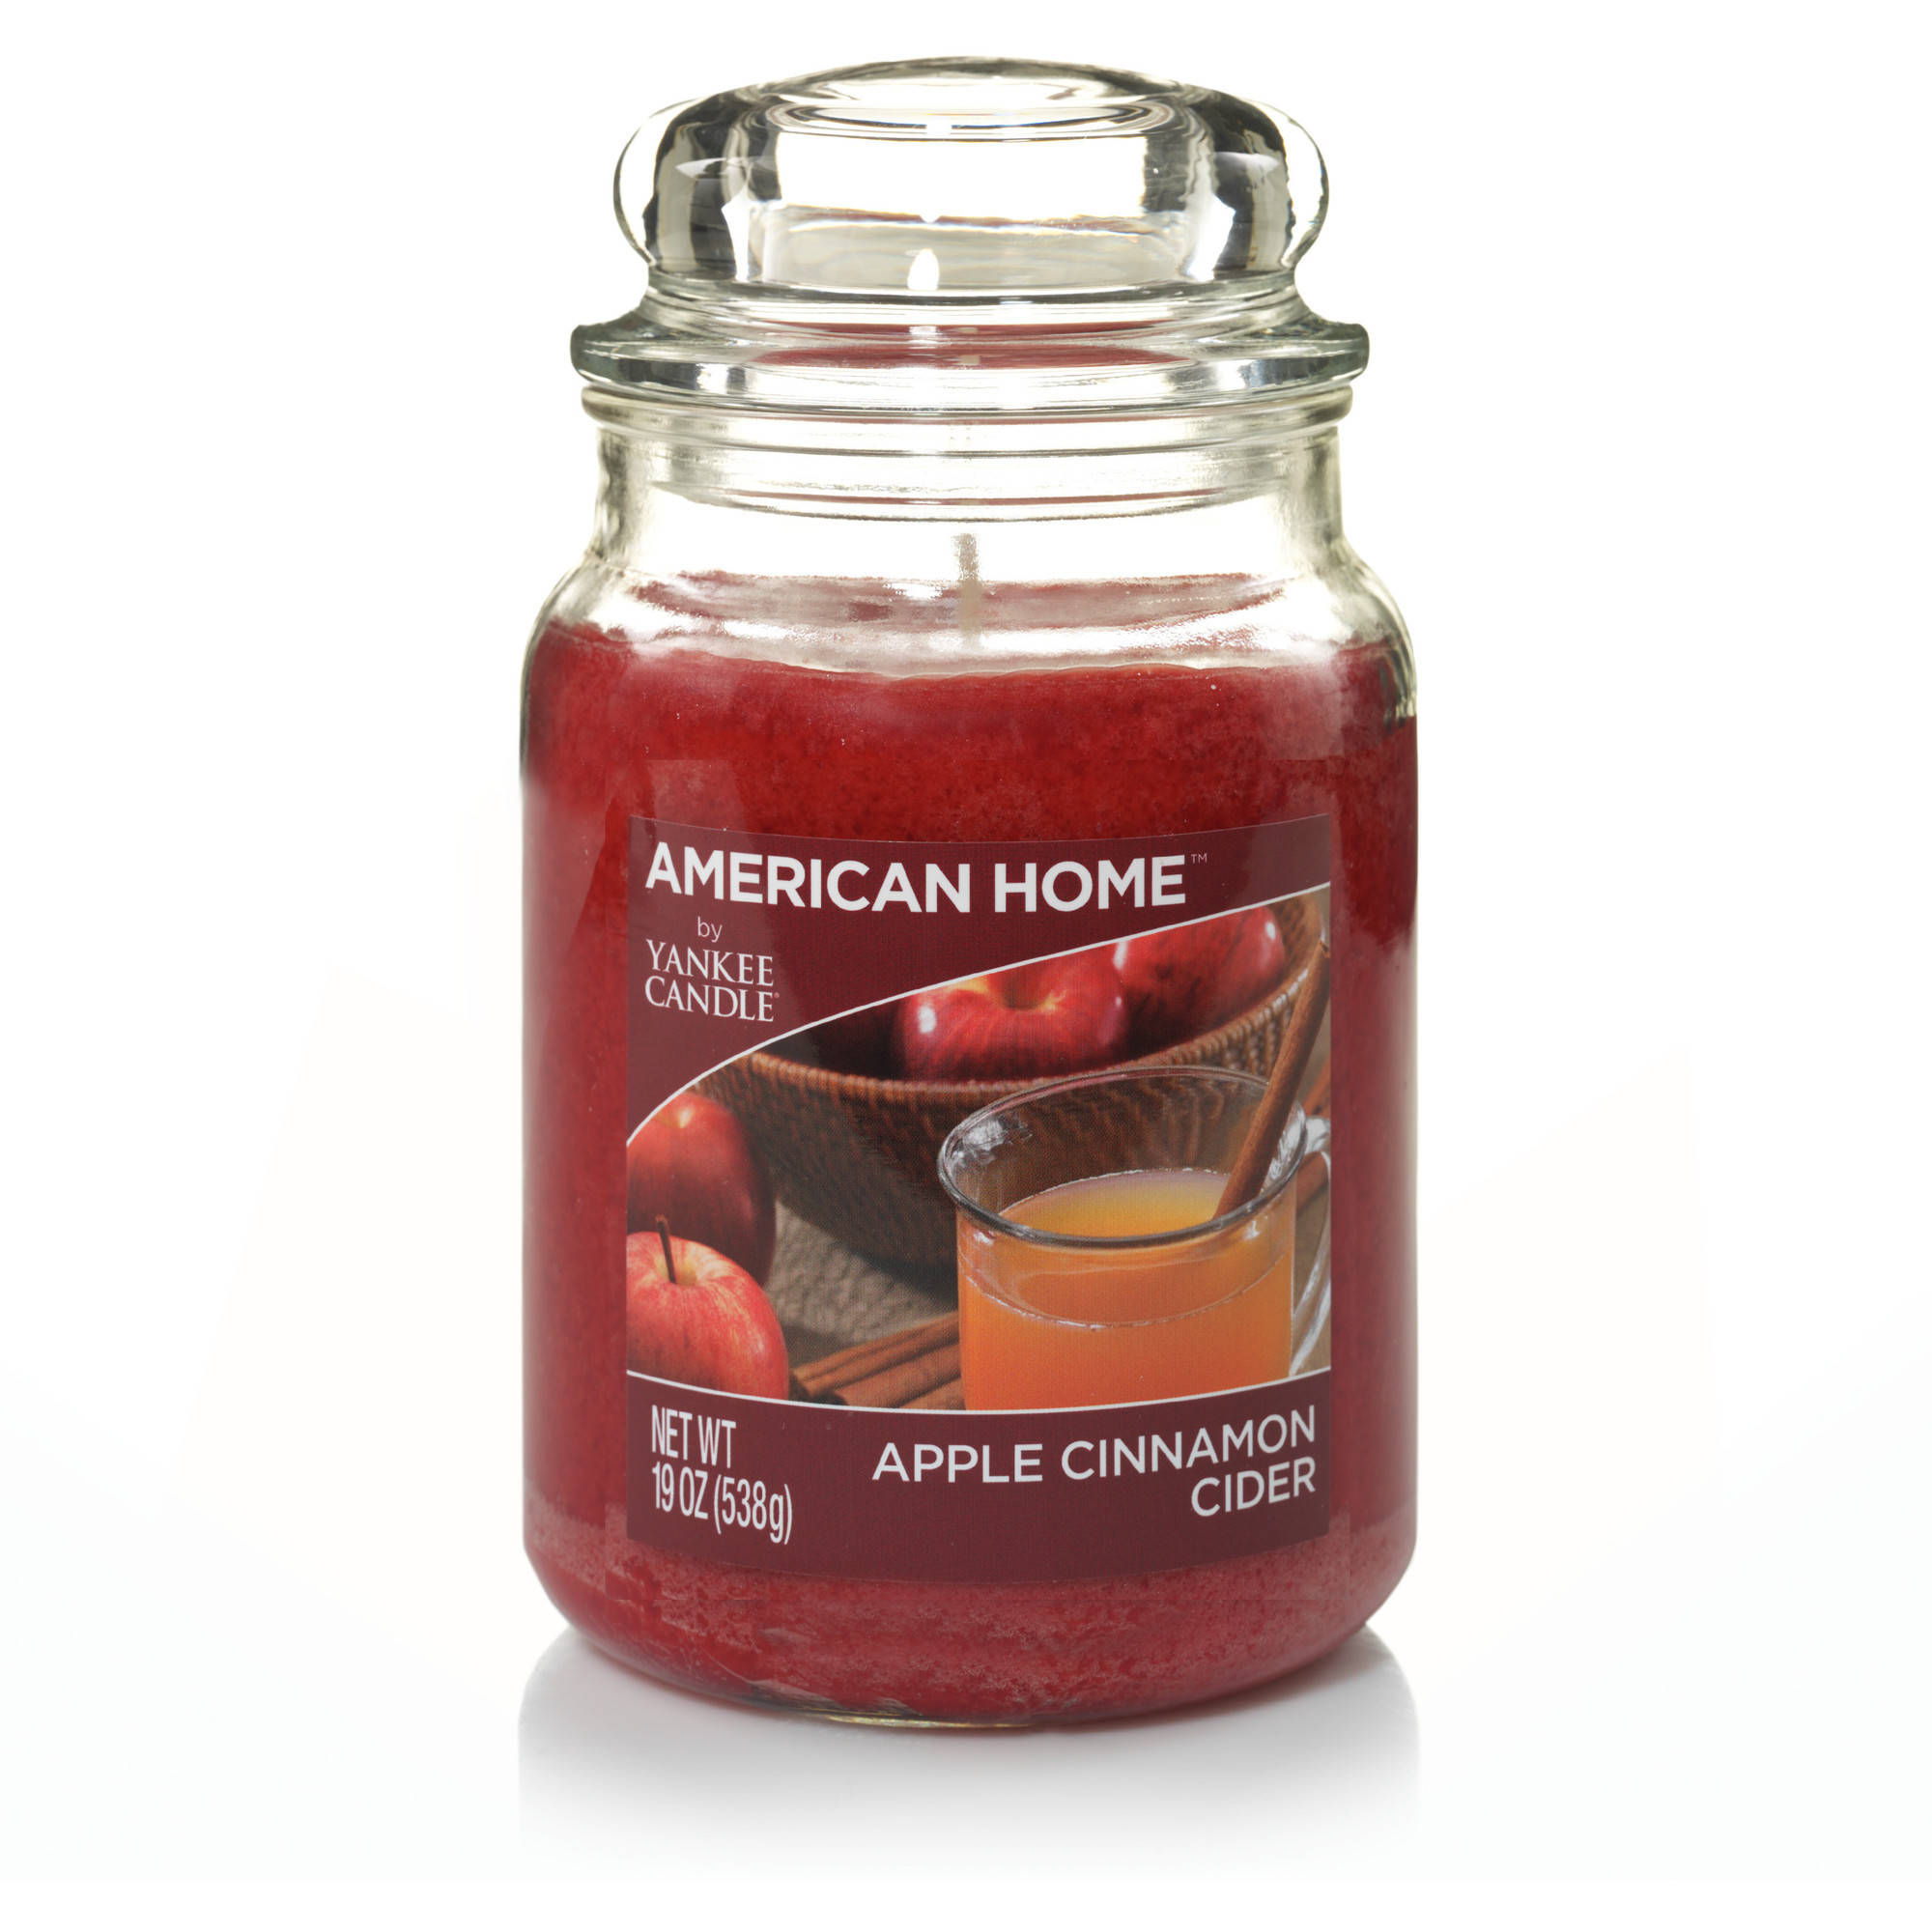 American Home by Yankee Candle Apple Cinnamon Cider, 19 oz Large Jar by YANKEE CANDLE CO